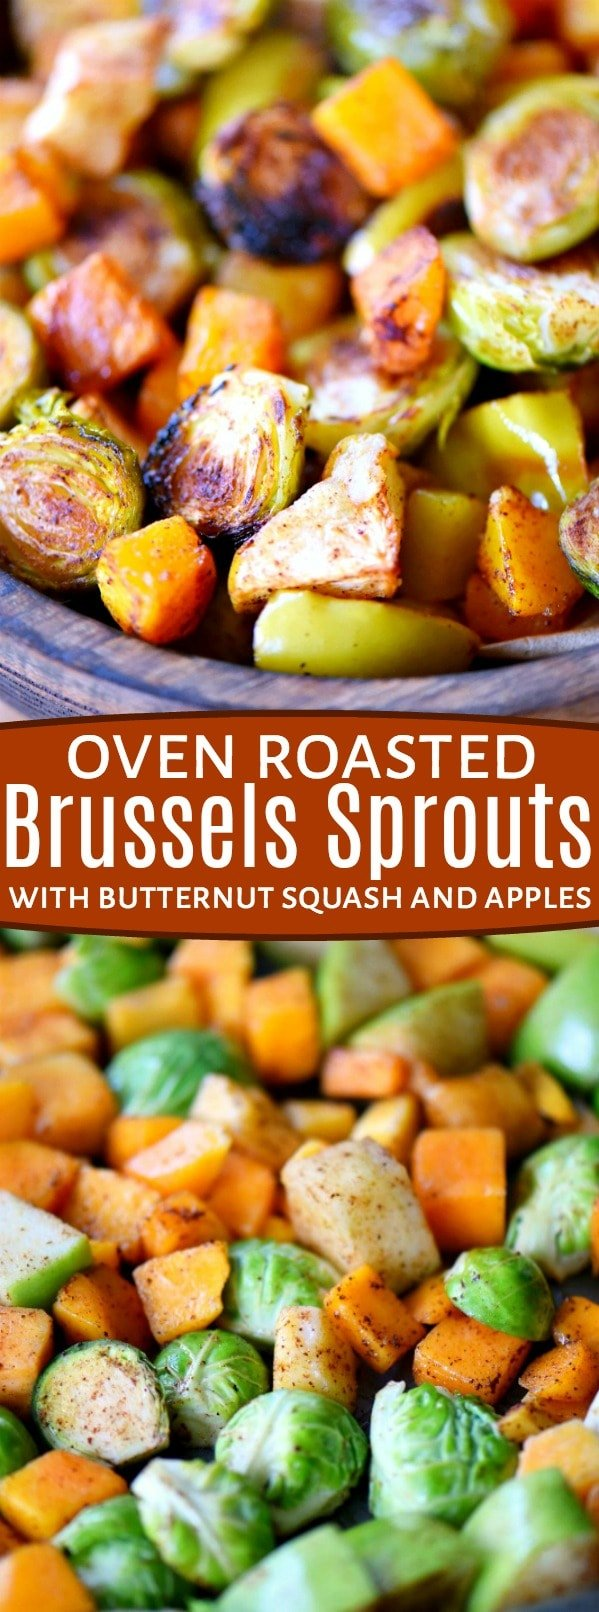 Oven Roasted Brussels Sprouts with Butternut Squash and Apples are liberally spiced with ground cinnamon and chili powder for a fantastic explosion of flavor. An easy side dish that is perfect for any night of the week. Whole30 compliant. // Mom On Timeout #roasted #vegetables #veggies #Brusselssprouts #butternutsquash #apples #recipe #fall #Thanksgiving #christmas #sidedish